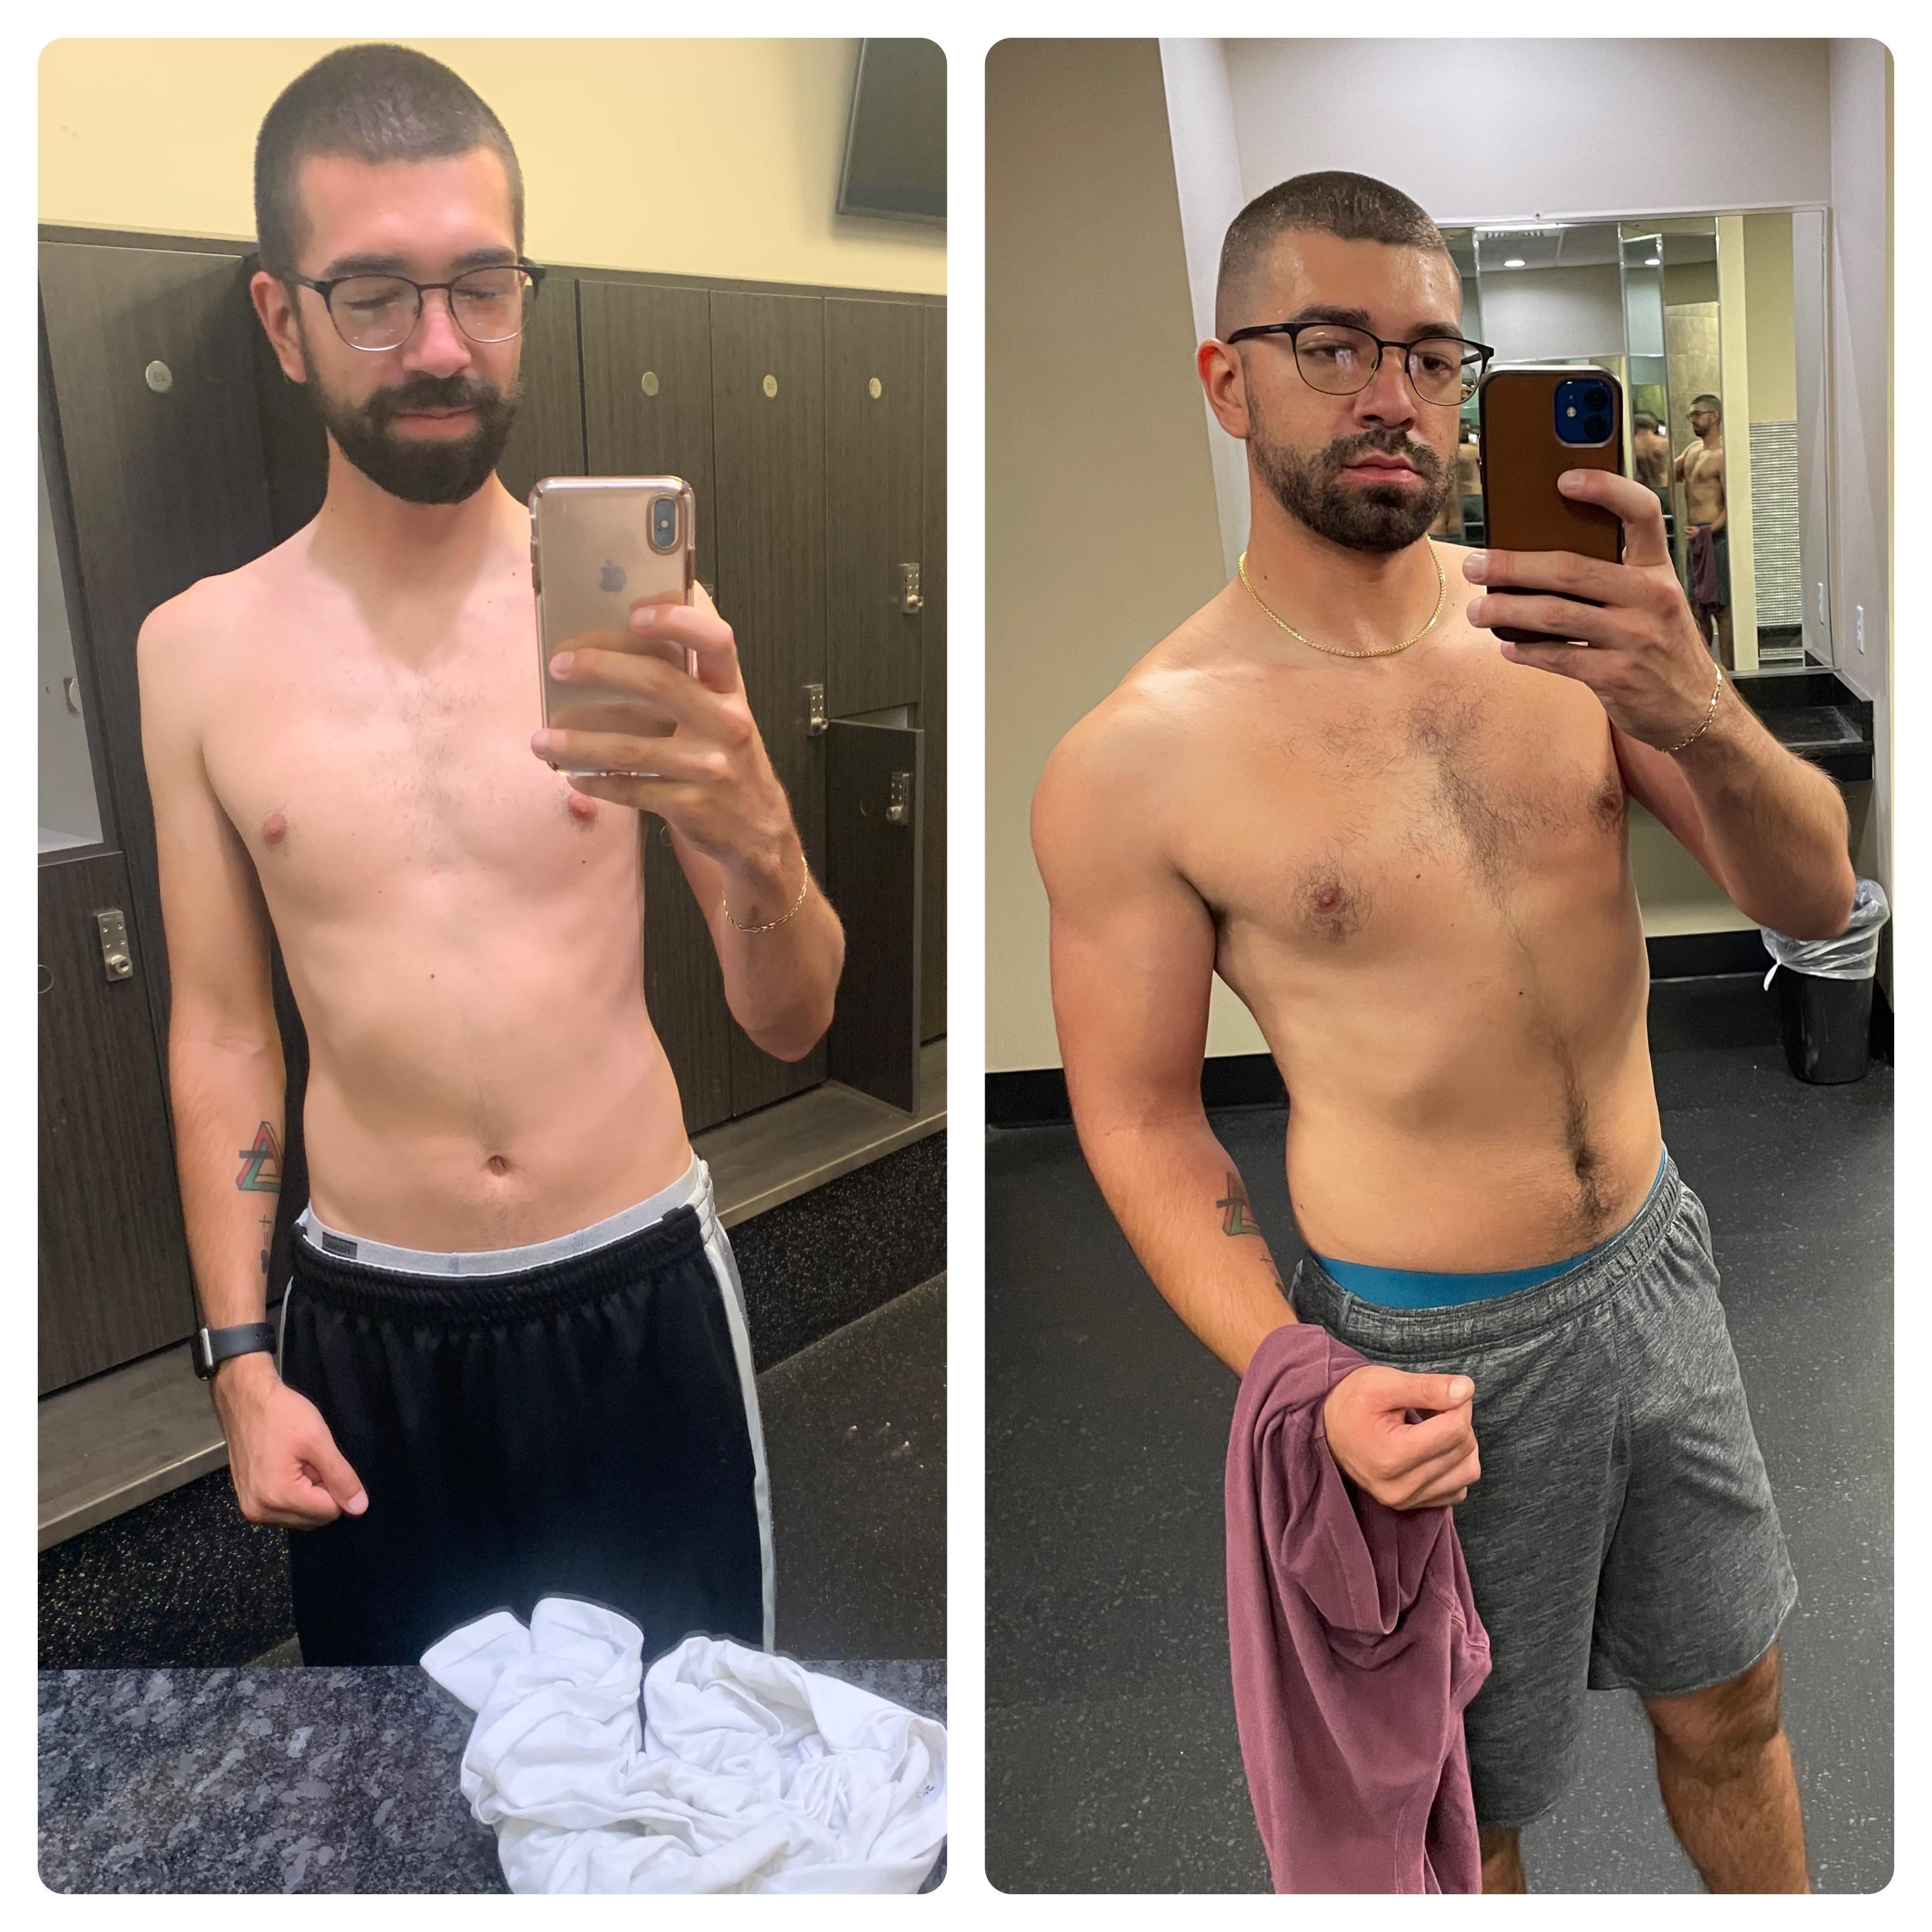 6 feet 1 Male Before and After 54 lbs Weight Gain 130 lbs to 184 lbs